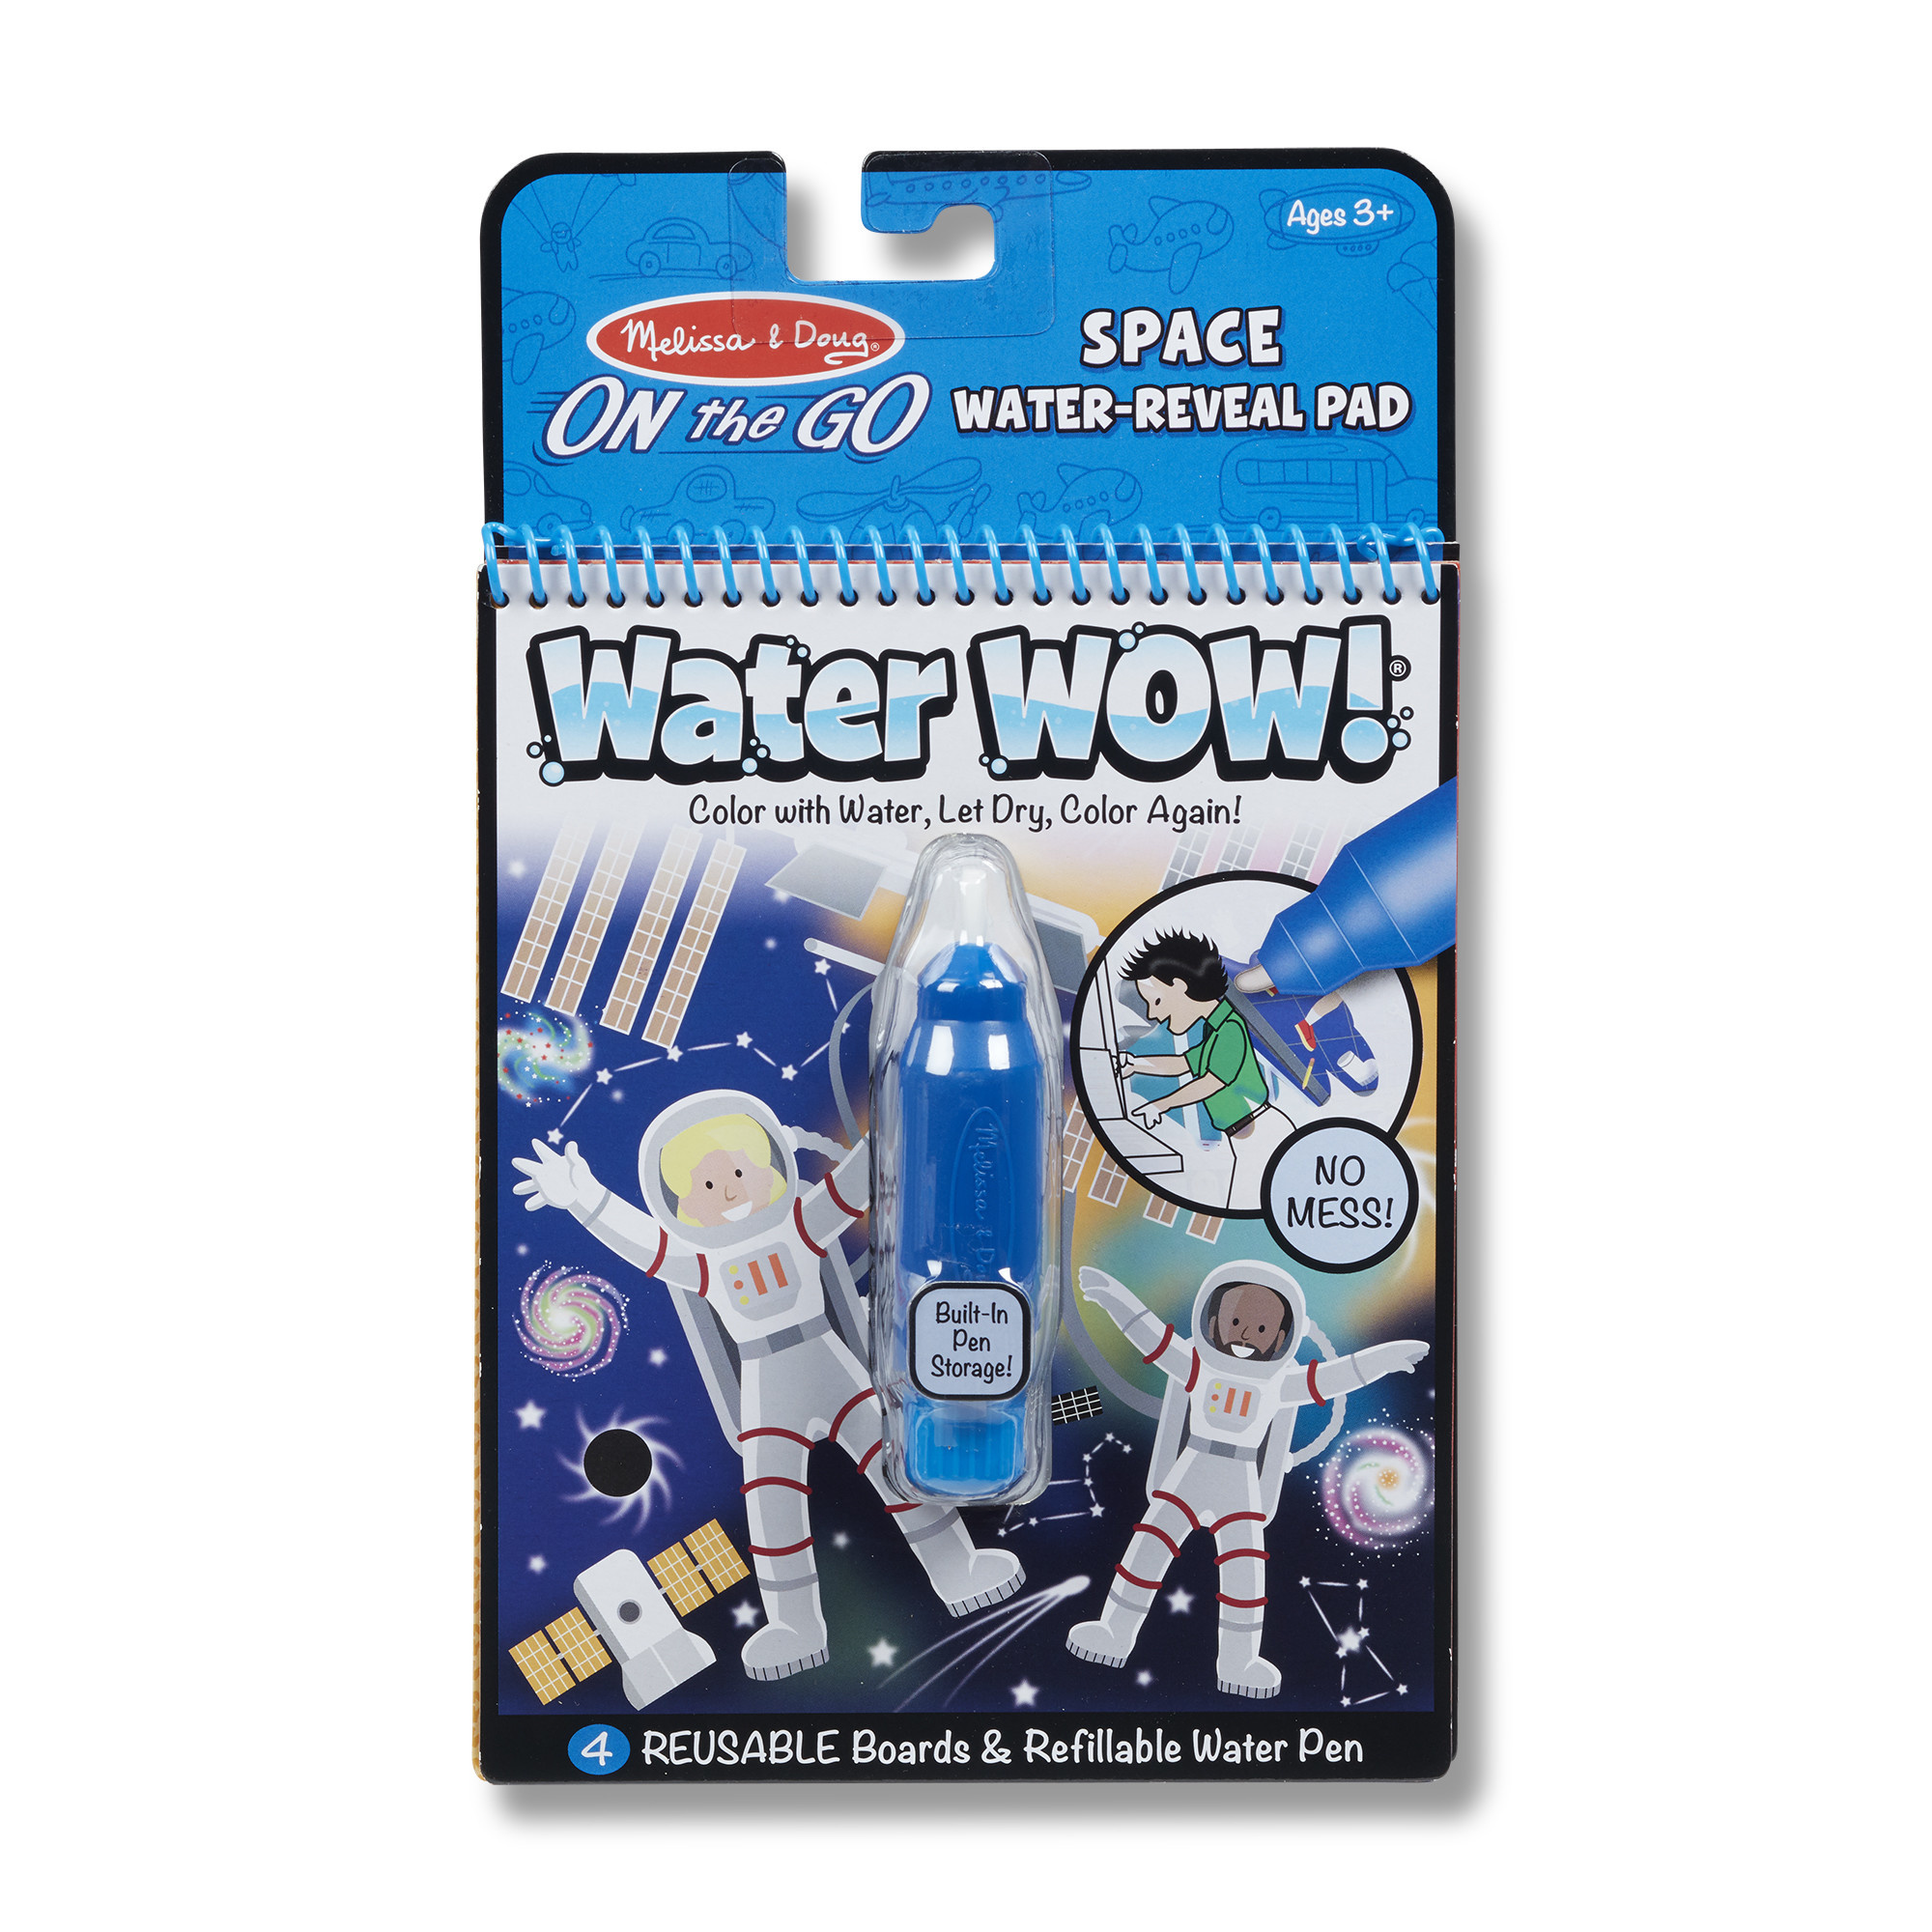 water wow space-1